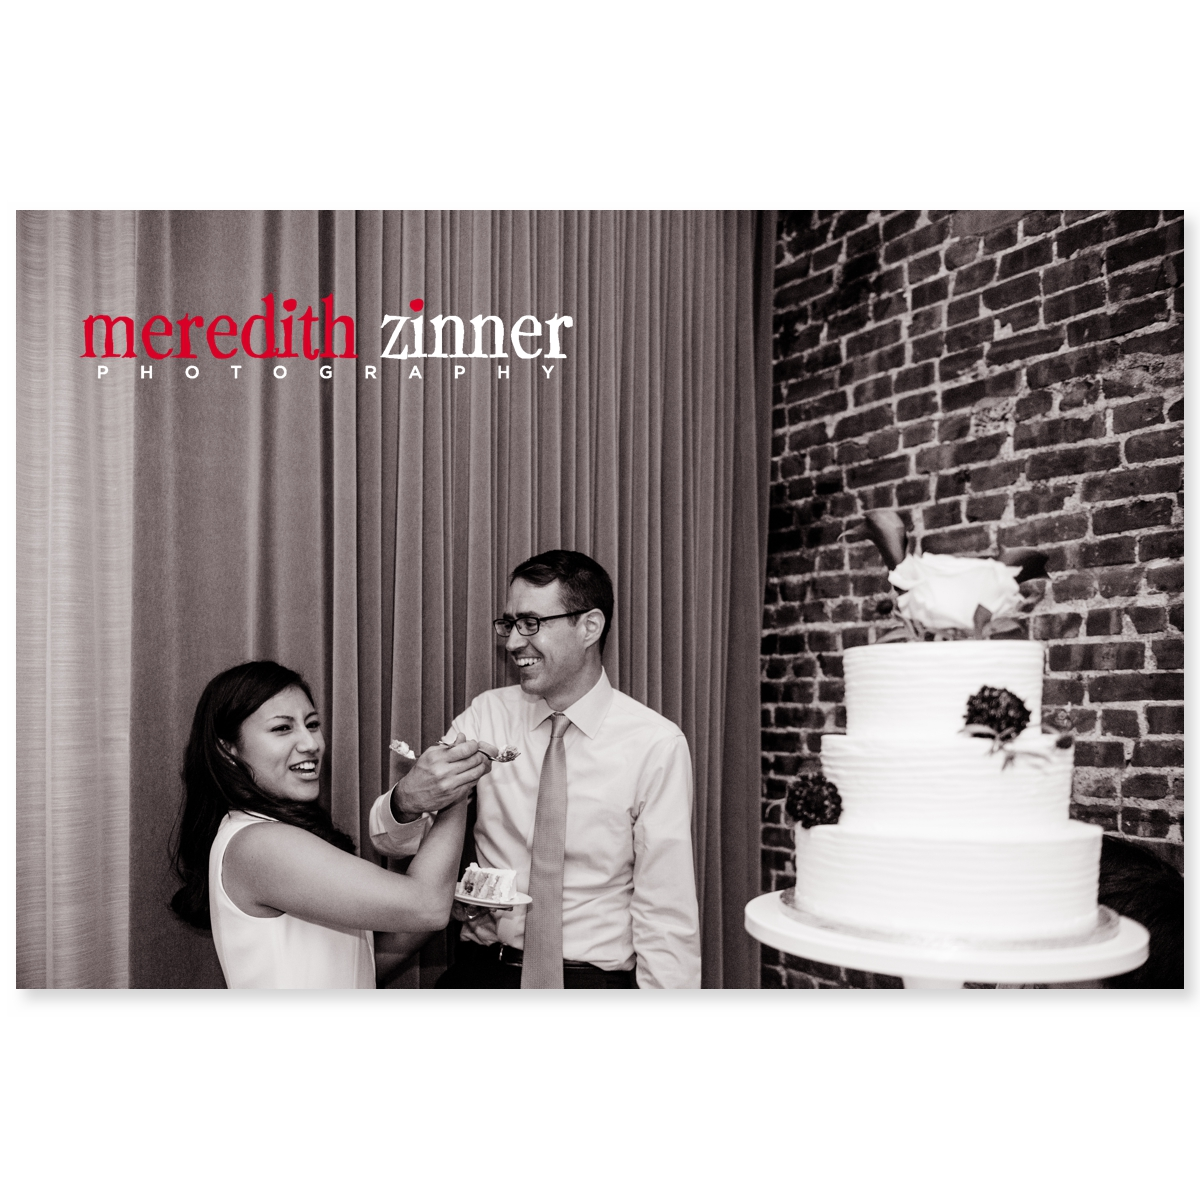 Meredith_Zinner_Photography_StilesCelebration_0319